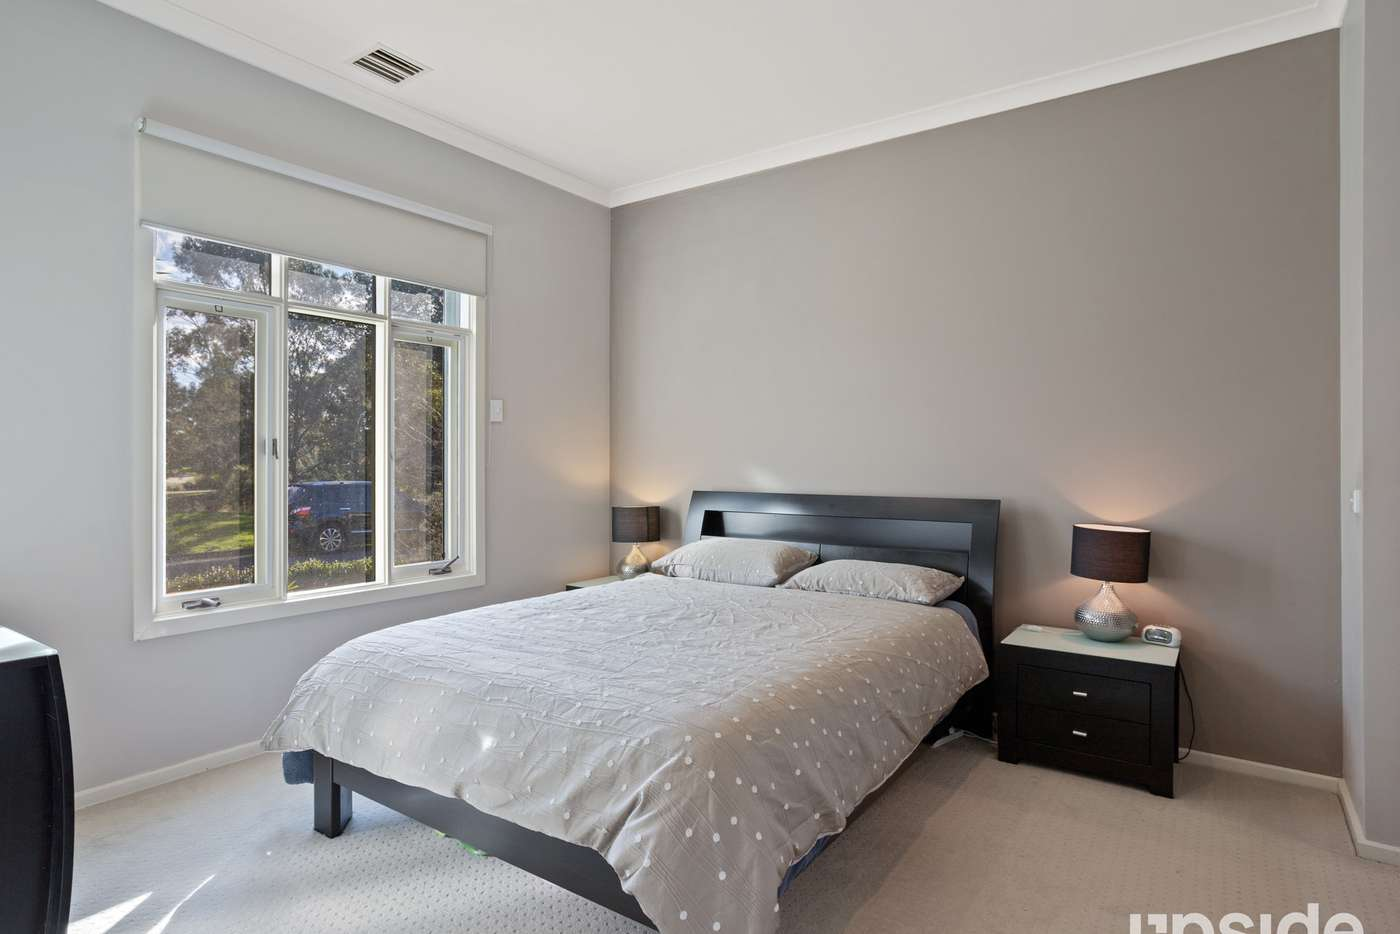 Sixth view of Homely house listing, 4 Sherdley Green, Caroline Springs VIC 3023